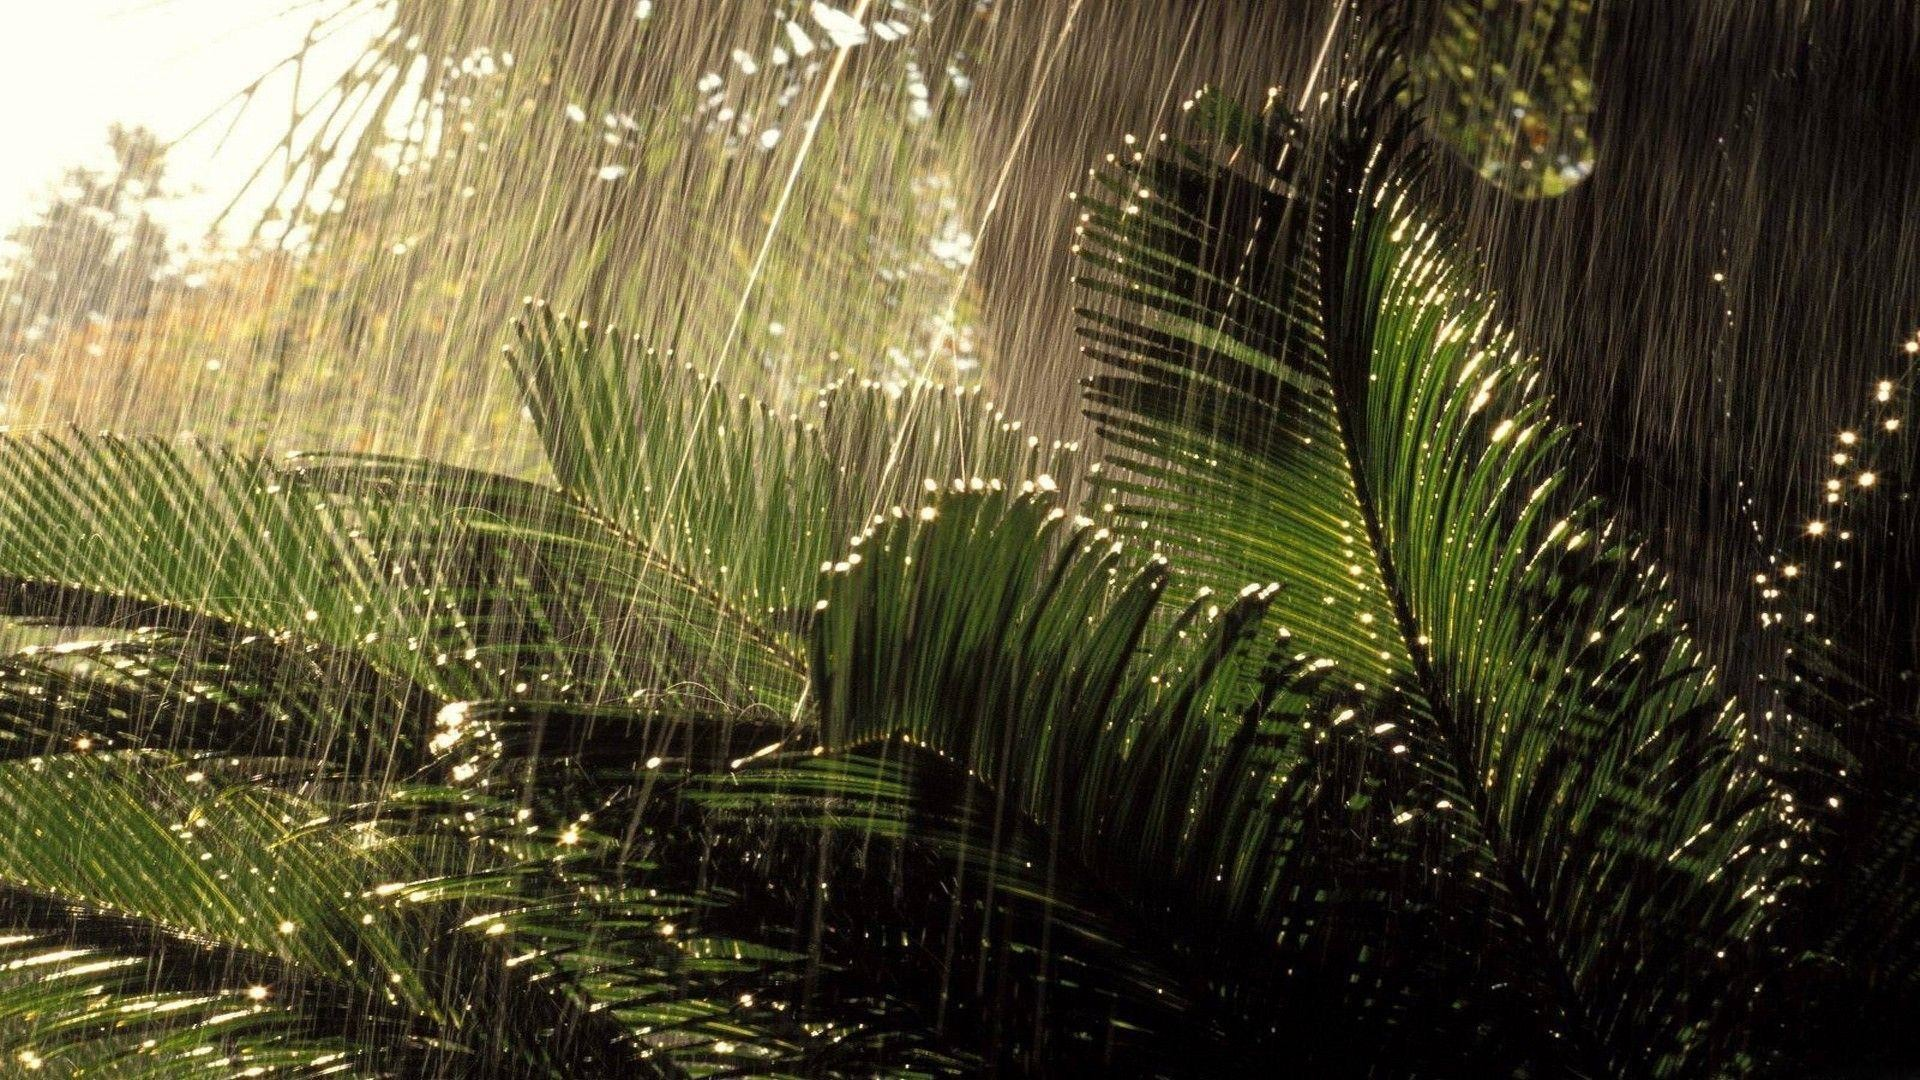 Cool Rainy Day Wallpapers | HD Wallpapers | Desktop Wallpapers